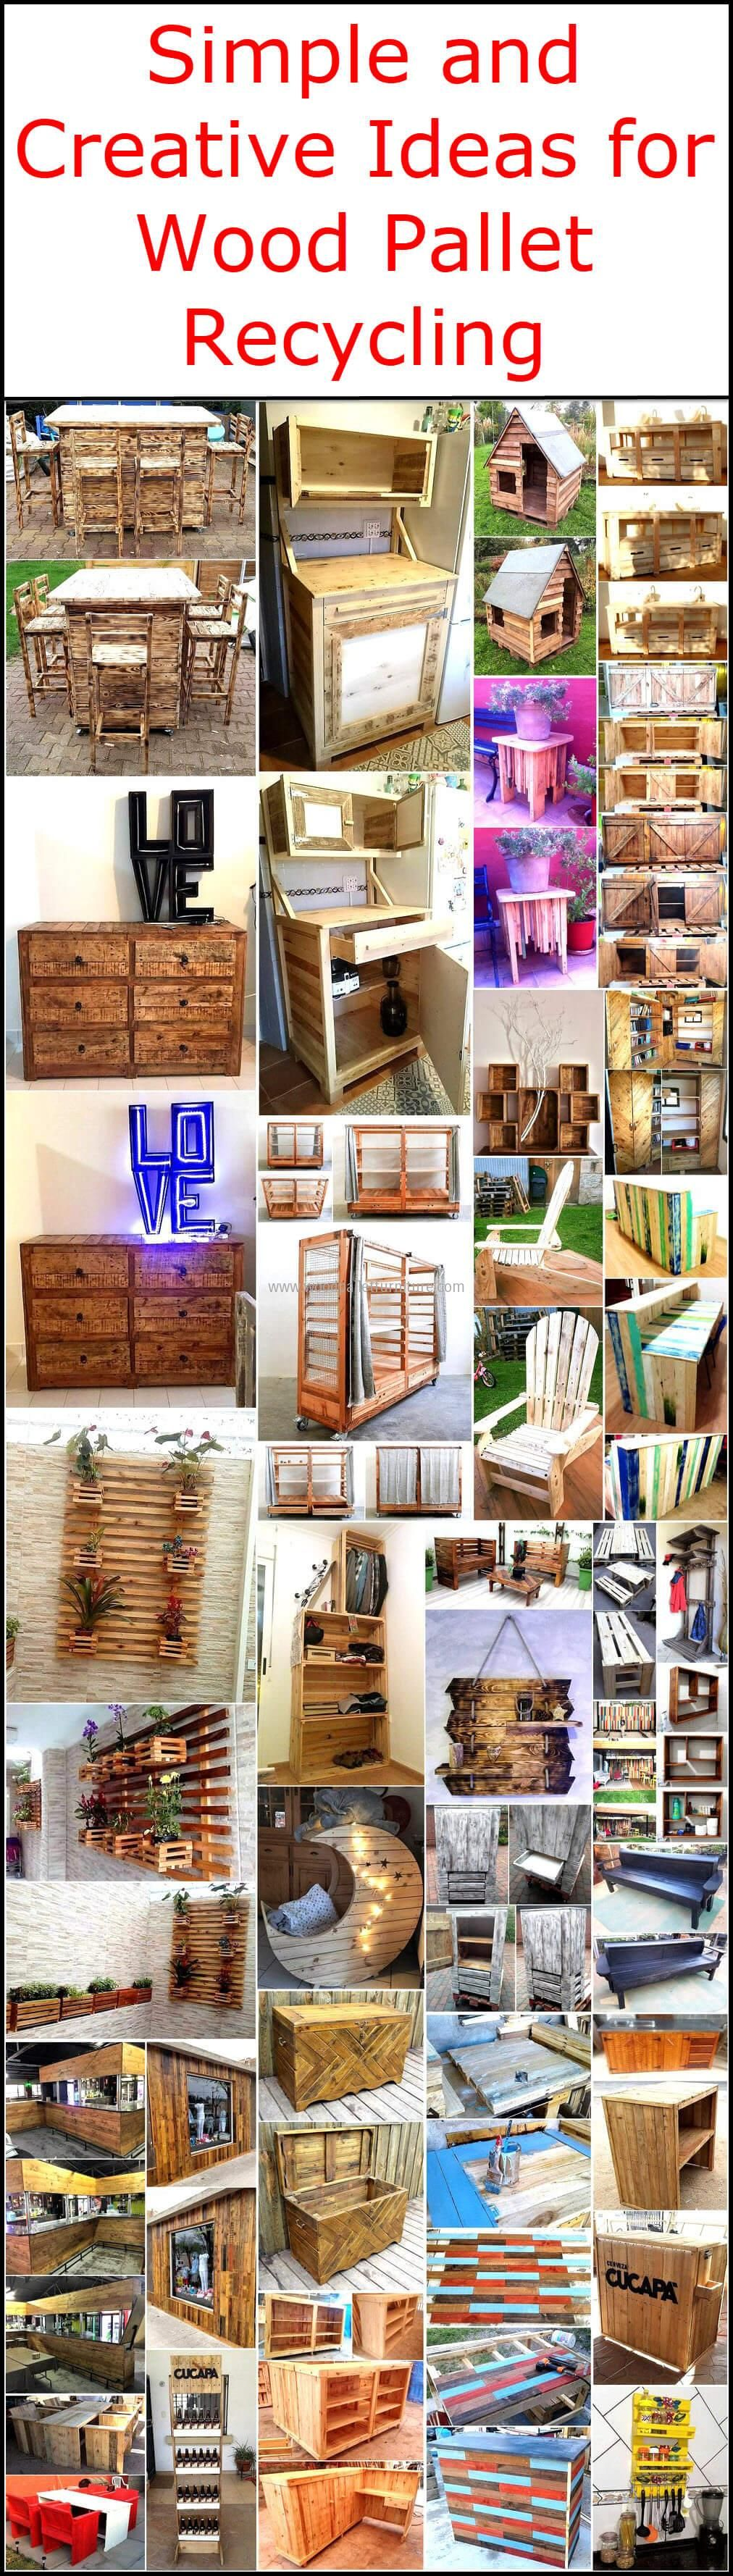 Simple and Creative Ideas for Wood Pallet Recycling #oldpalletsforcrafting